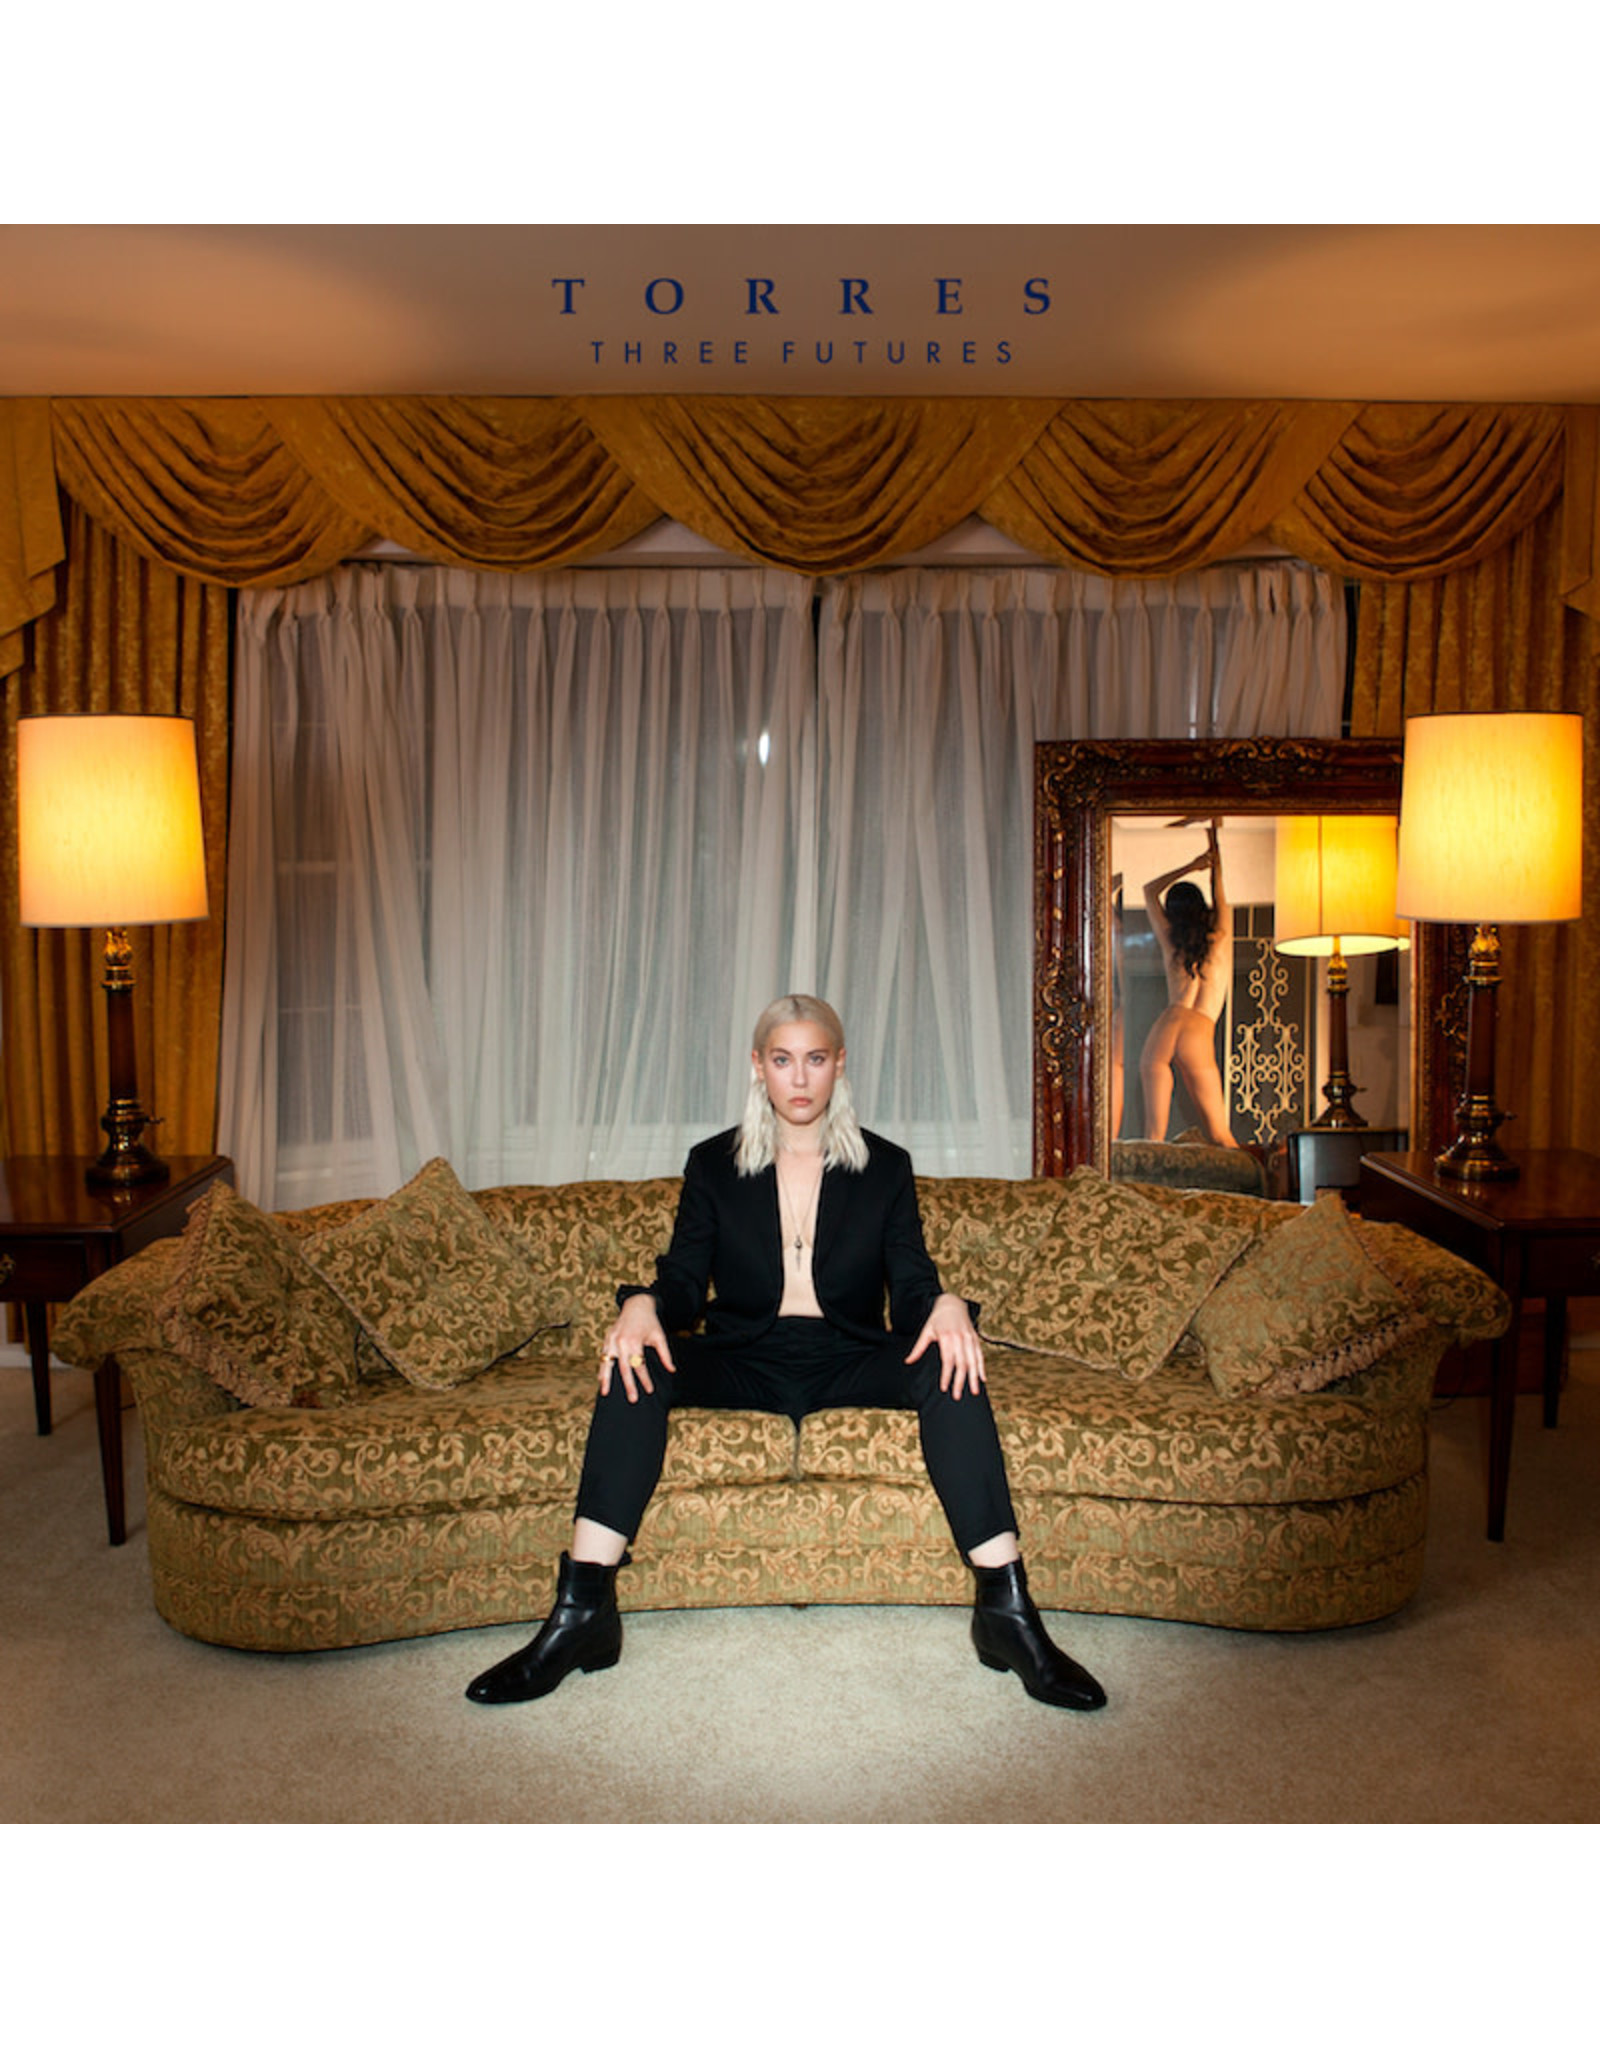 Torres - Three Futures LP